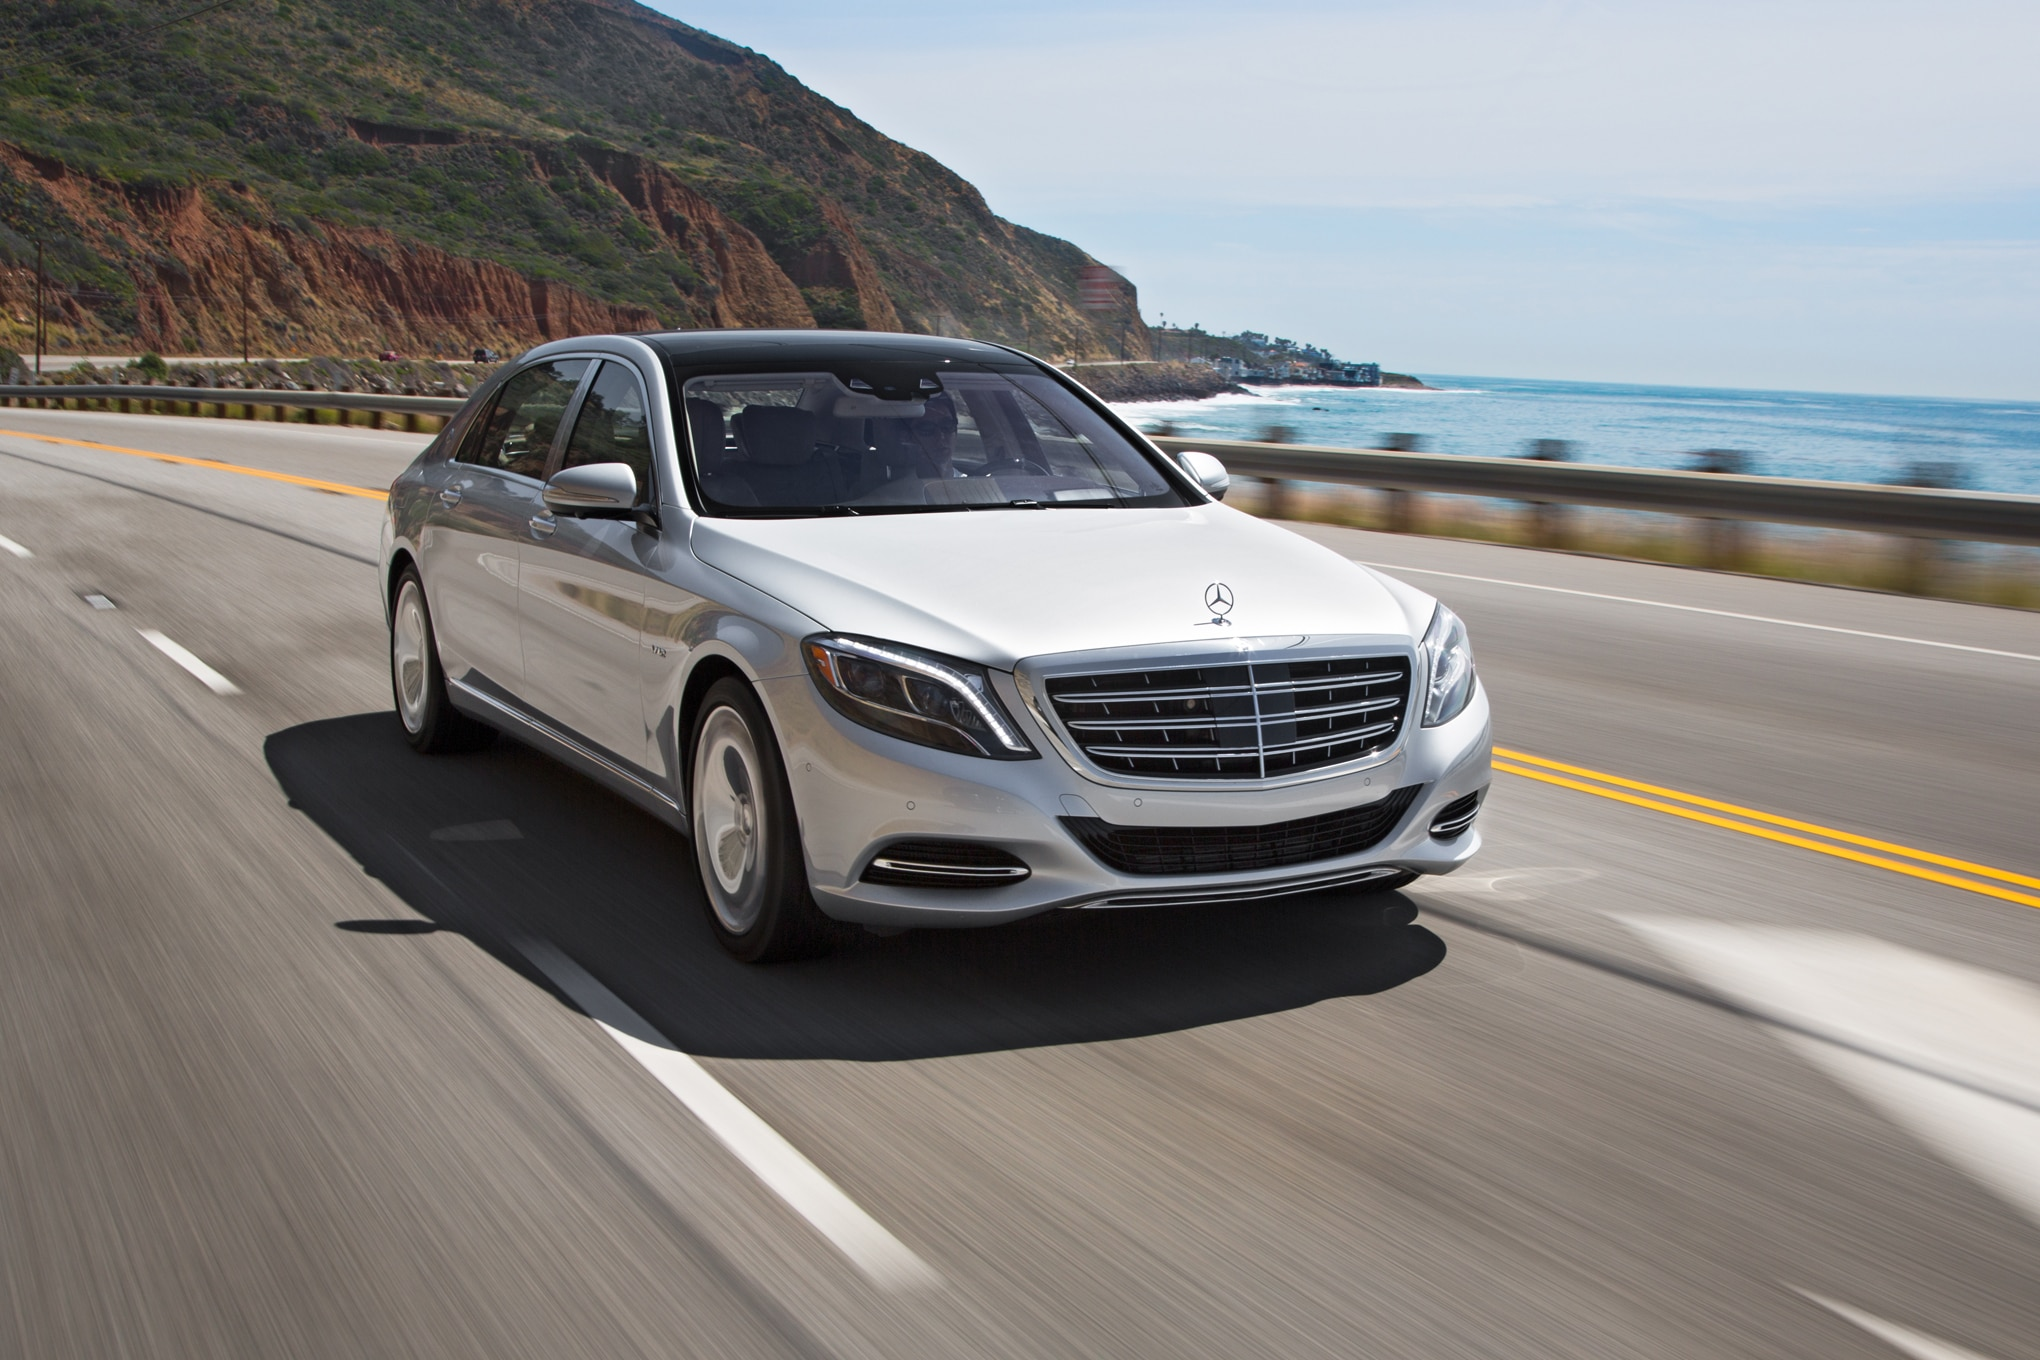 2016 mercedes maybach s600 debuts in l a with ultra luxury trimmings. Black Bedroom Furniture Sets. Home Design Ideas